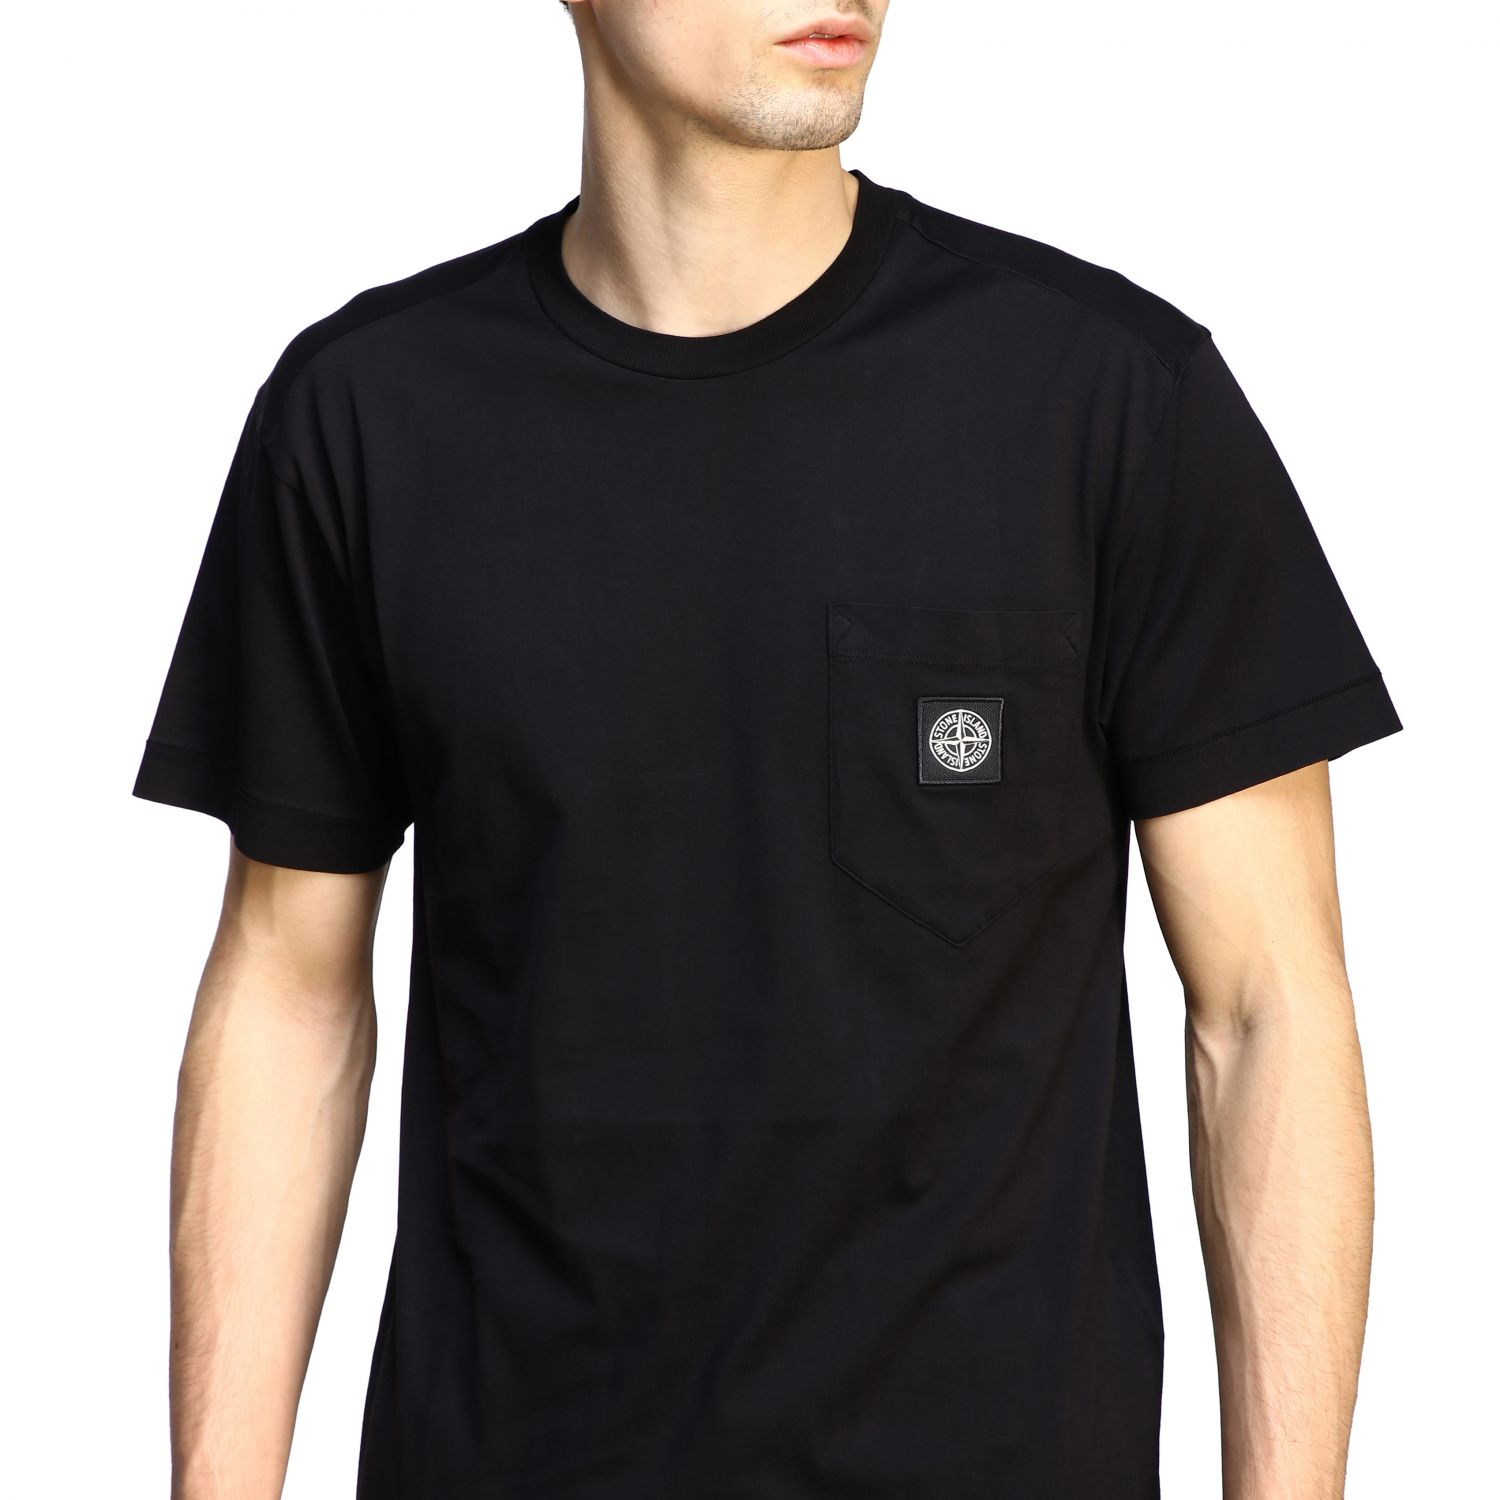 T-shirt men Stone Island black 5